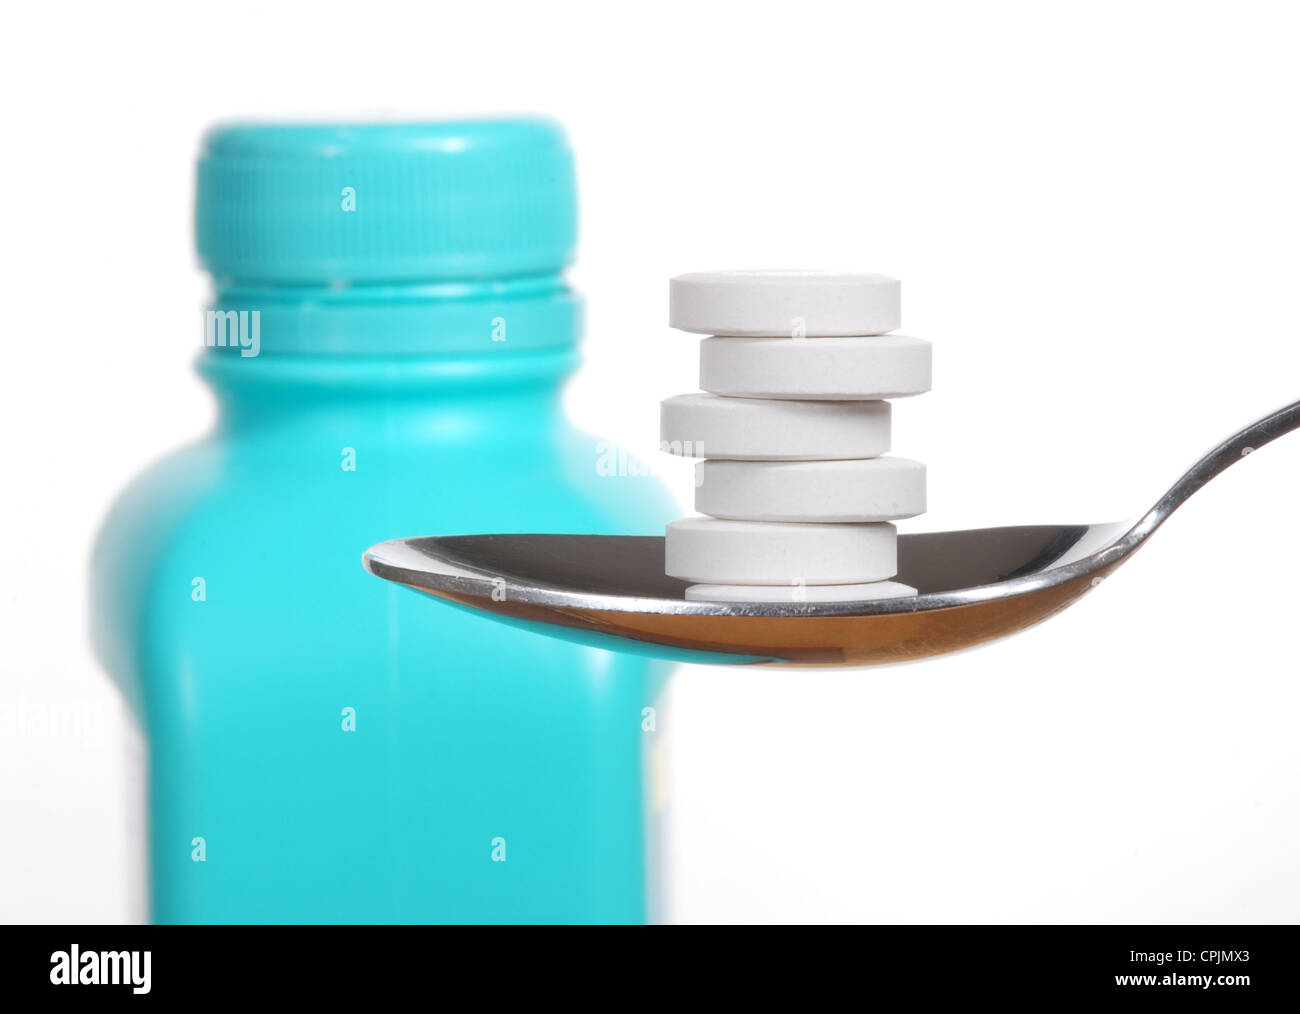 Antacid tablets on a spoon, a bottle of antacid blurred in the background - Stock Image